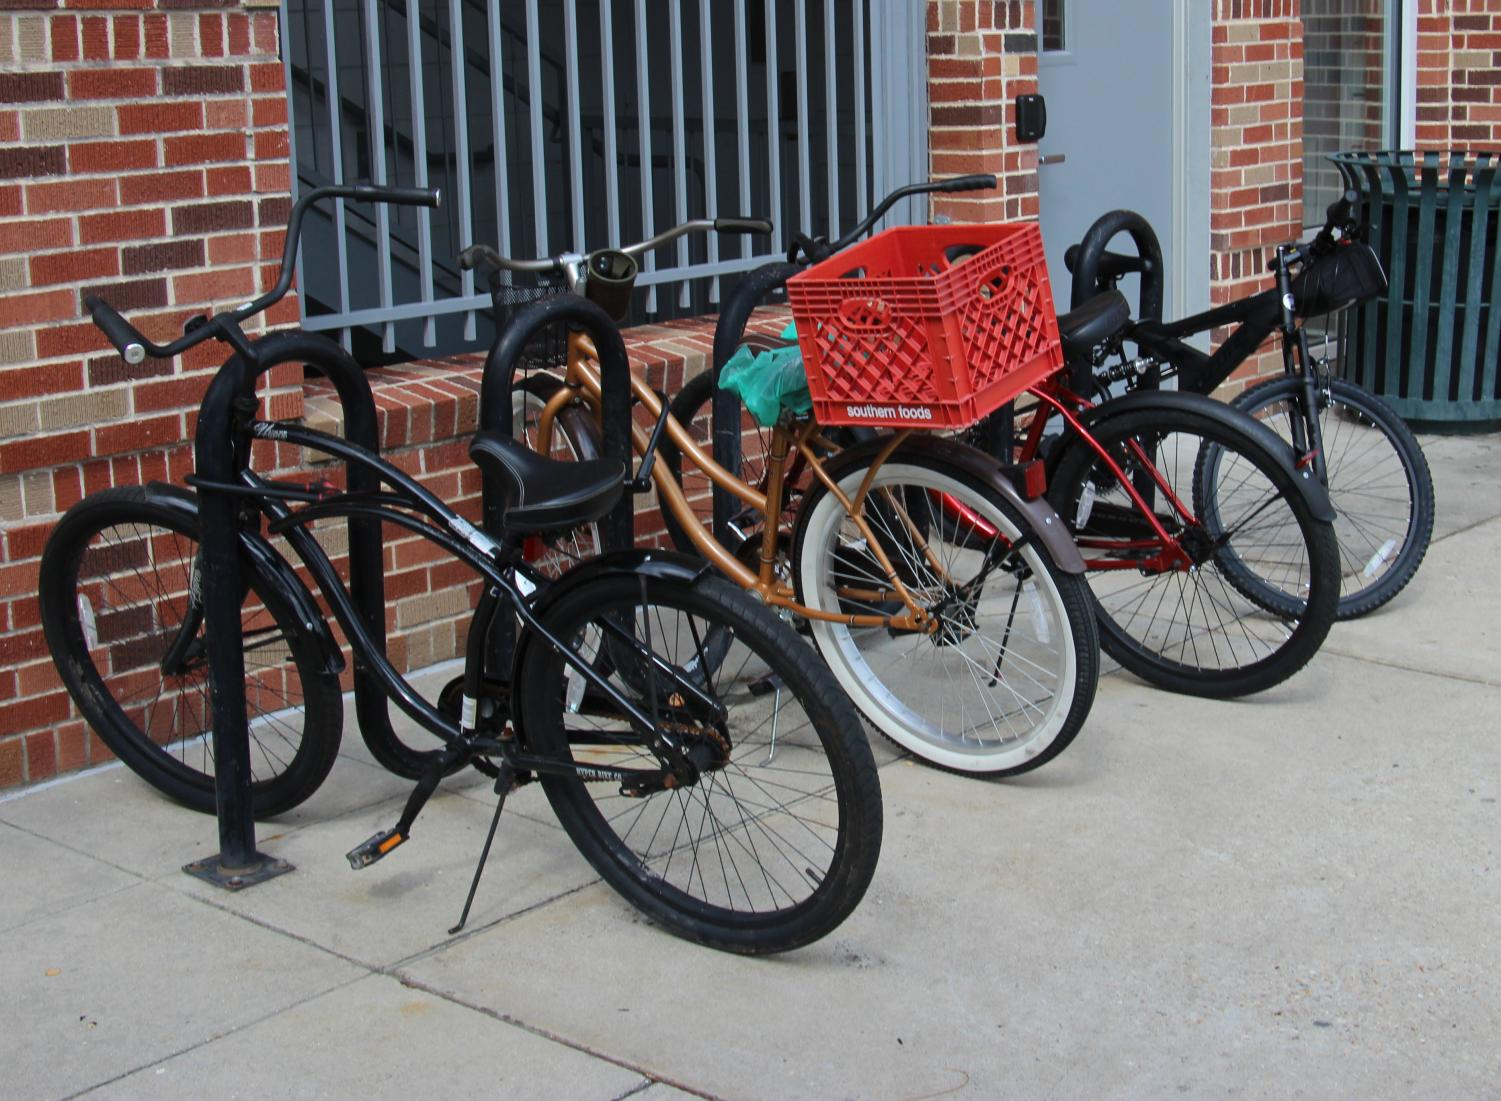 Student's bicycles are chained to a bike rack outside of St. Tammany Residence Hall. To use a bicycle on campus, students must register their bicycle with the Office of Transportation Services.